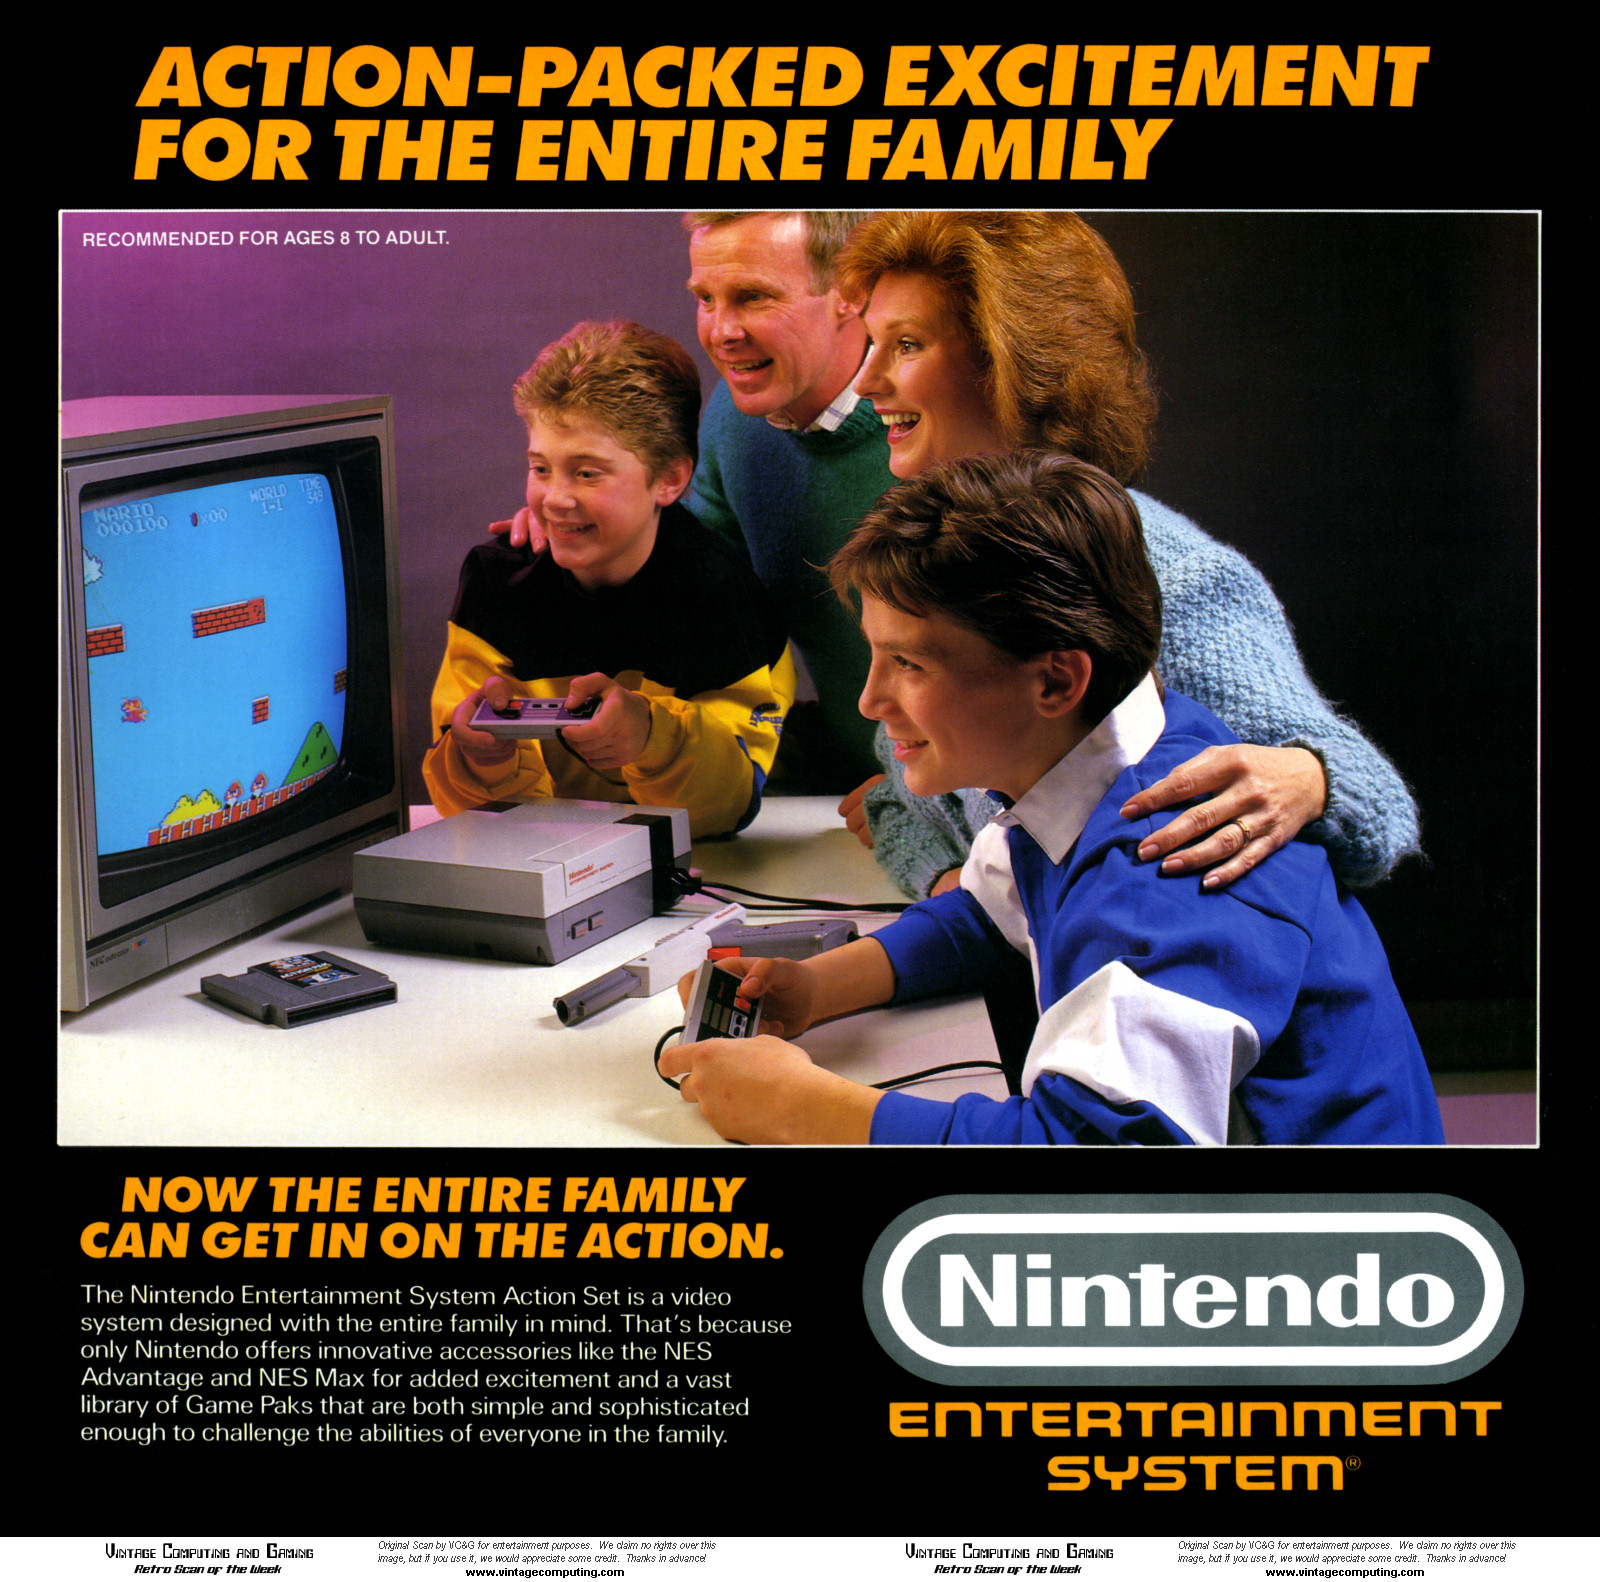 This is the picture, by the way. No, I have no idea what the kid with the other controller is doing.